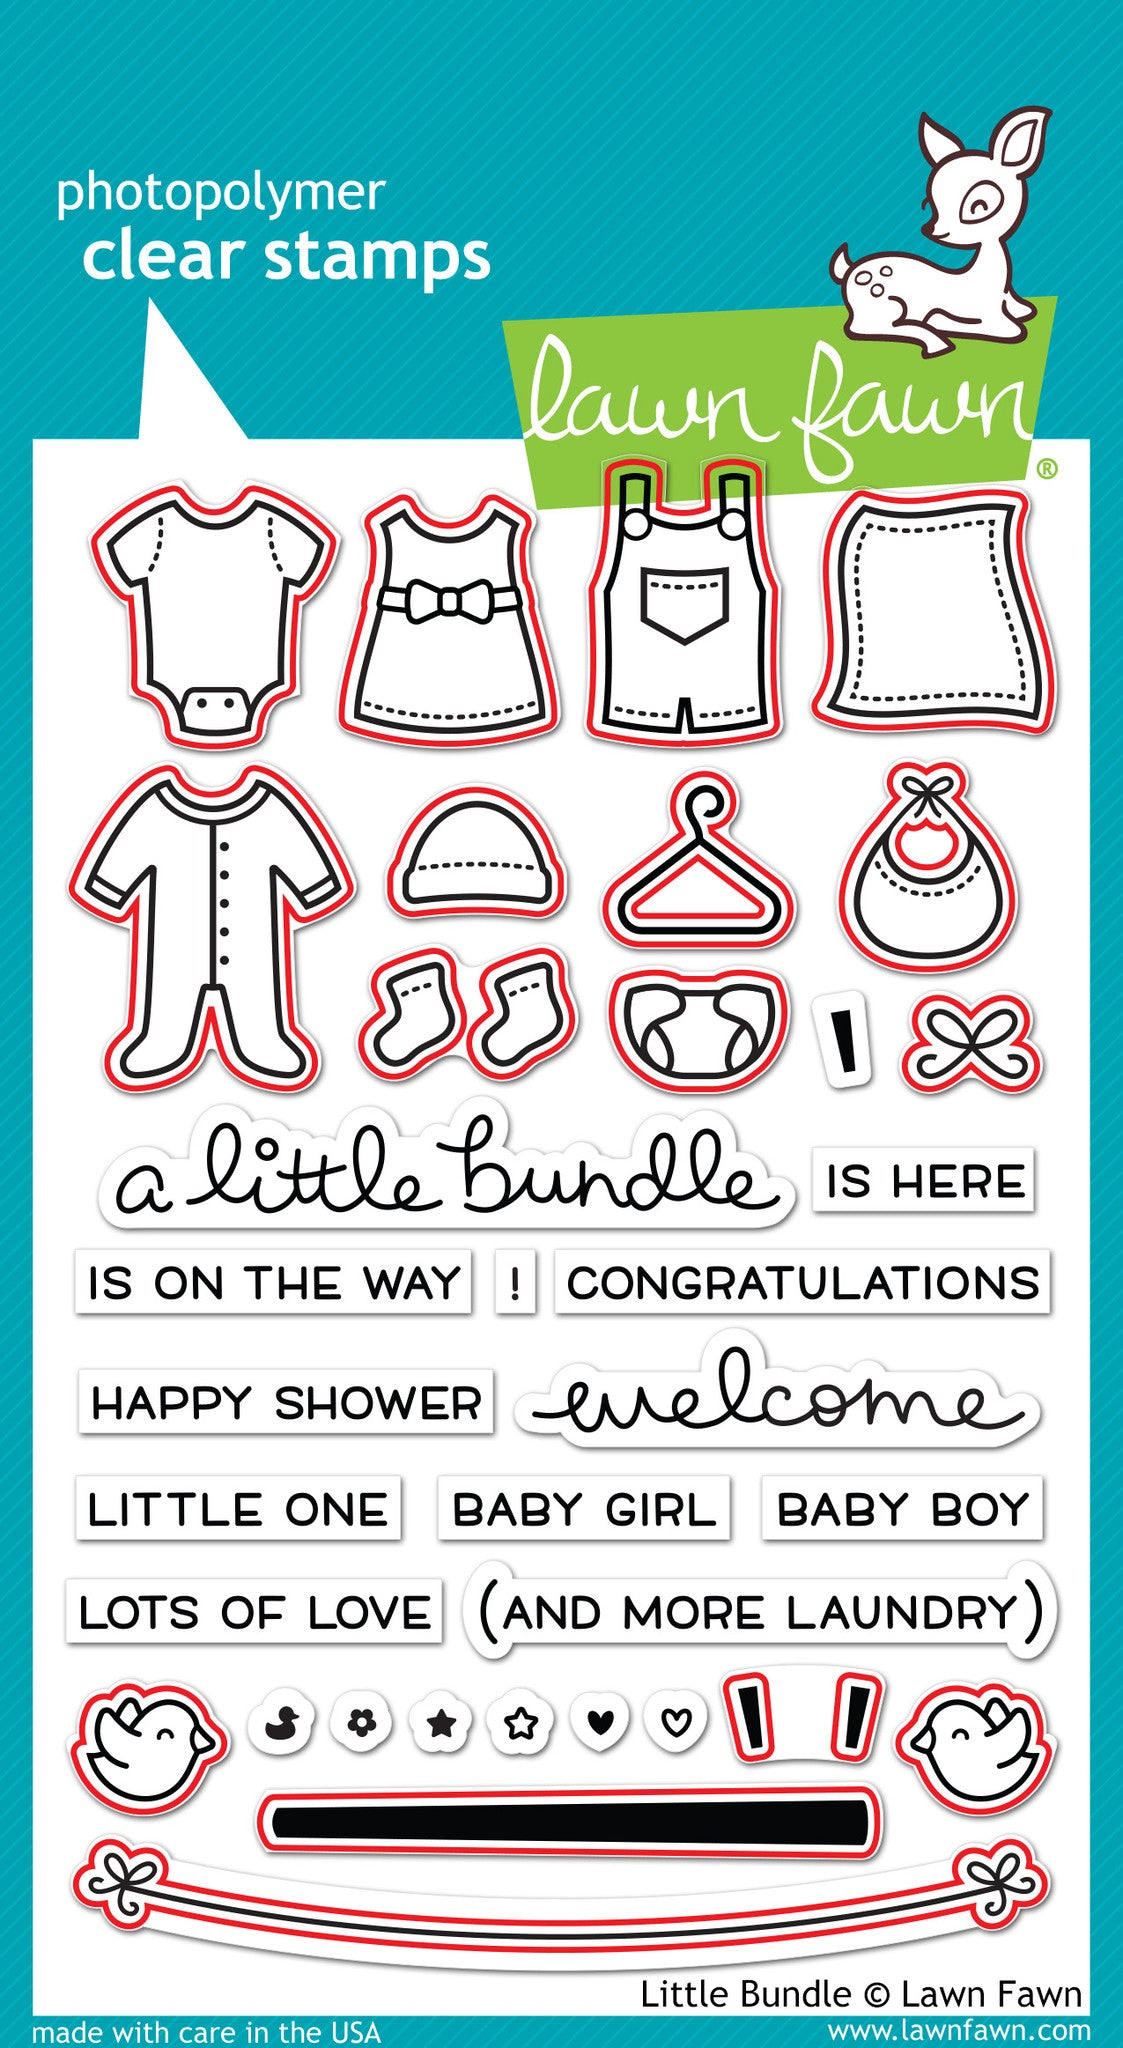 little bundle - lawn cuts